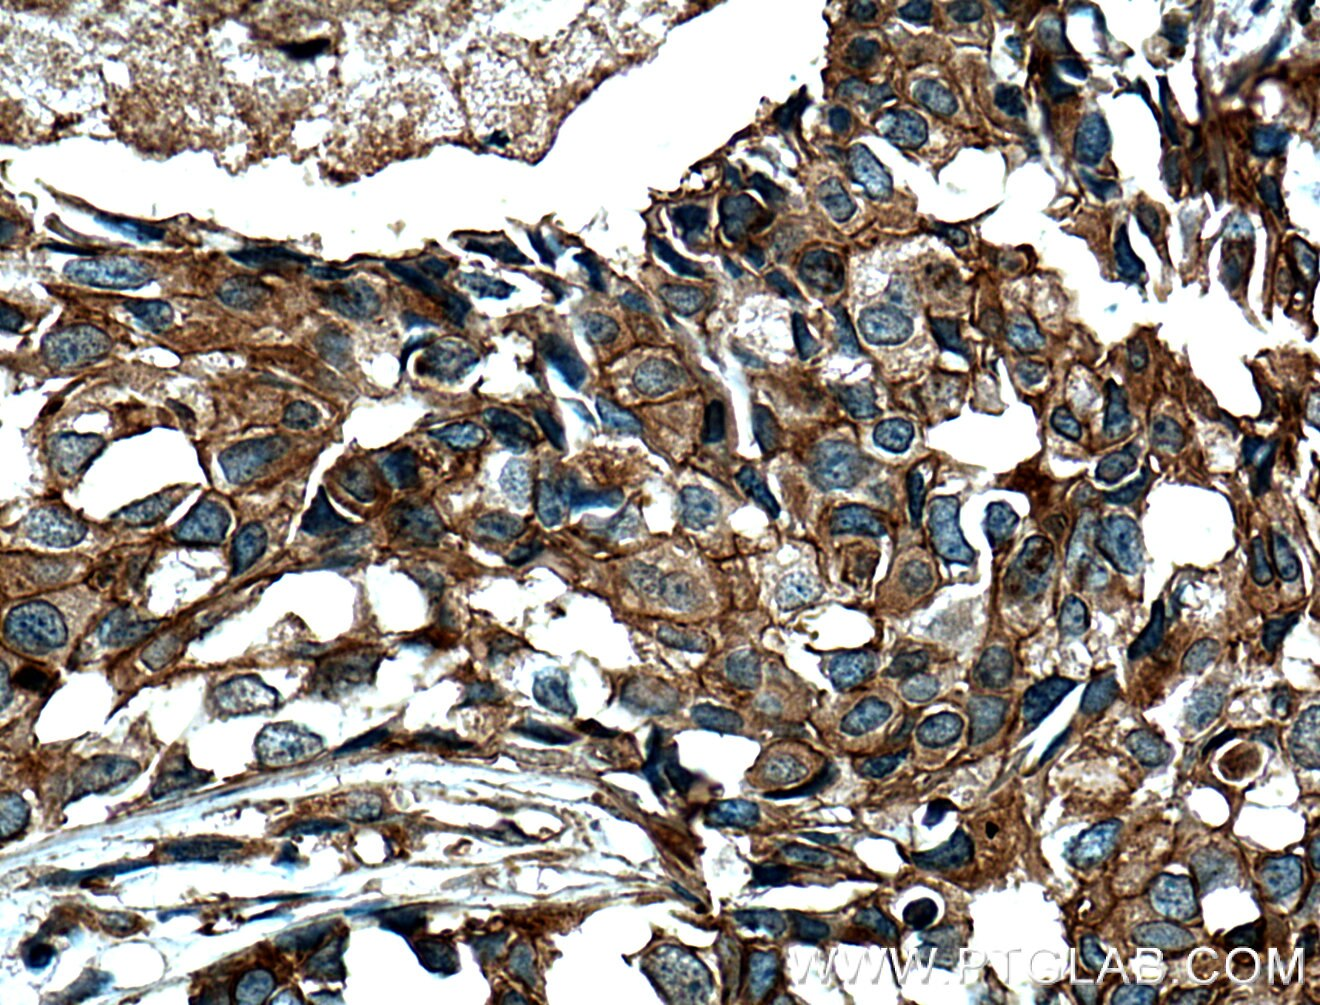 IHC staining of human breast cancer using 66389-1-Ig